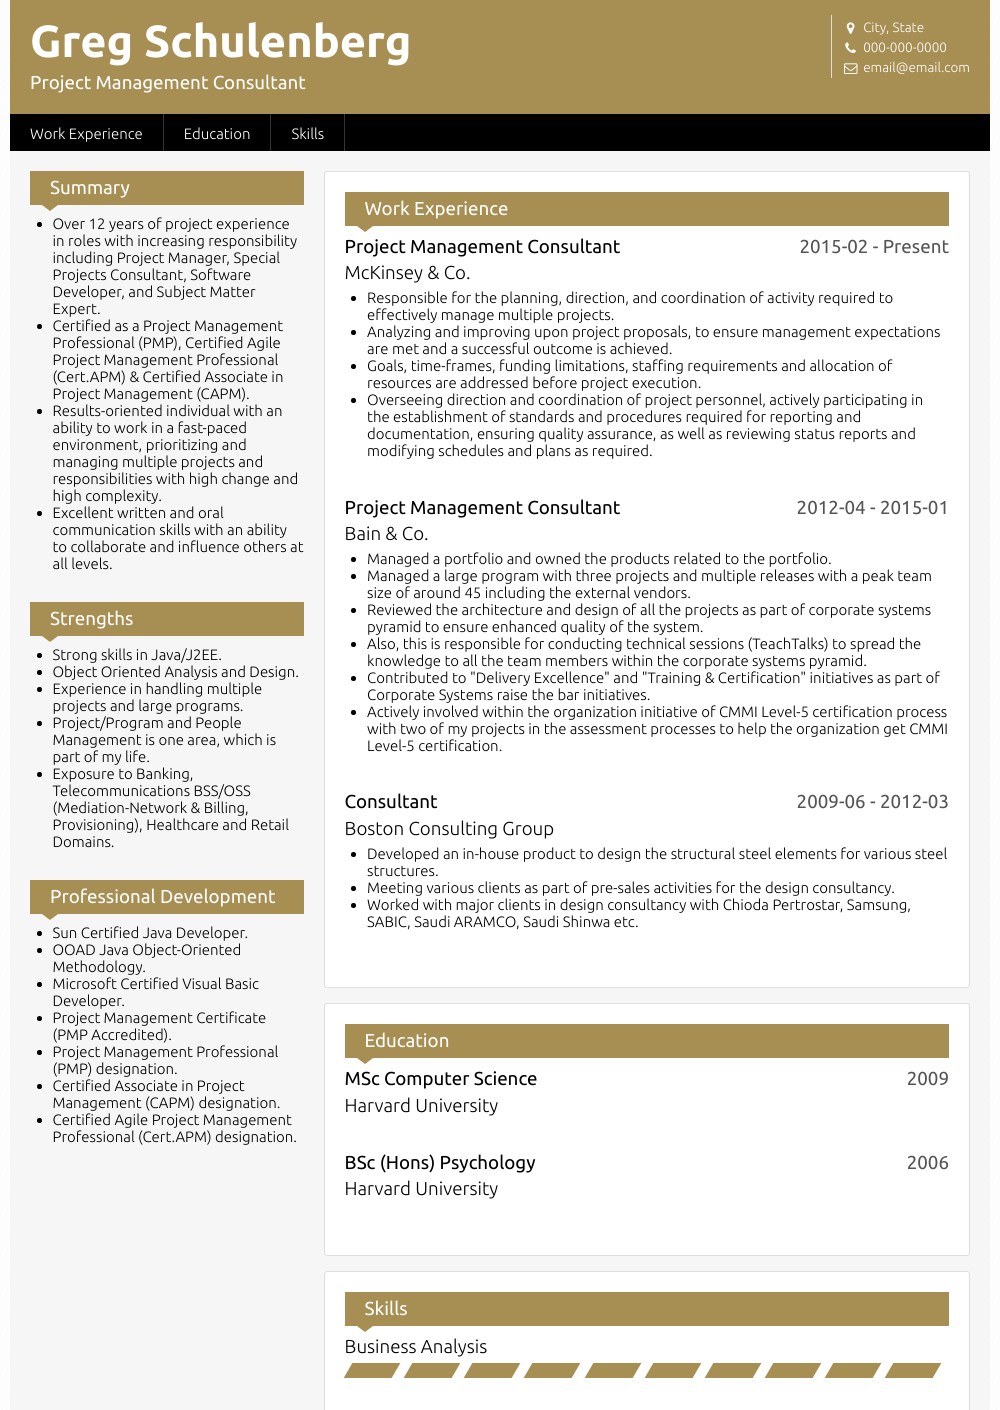 Management Consultant Resume Samples Templates Visualcv